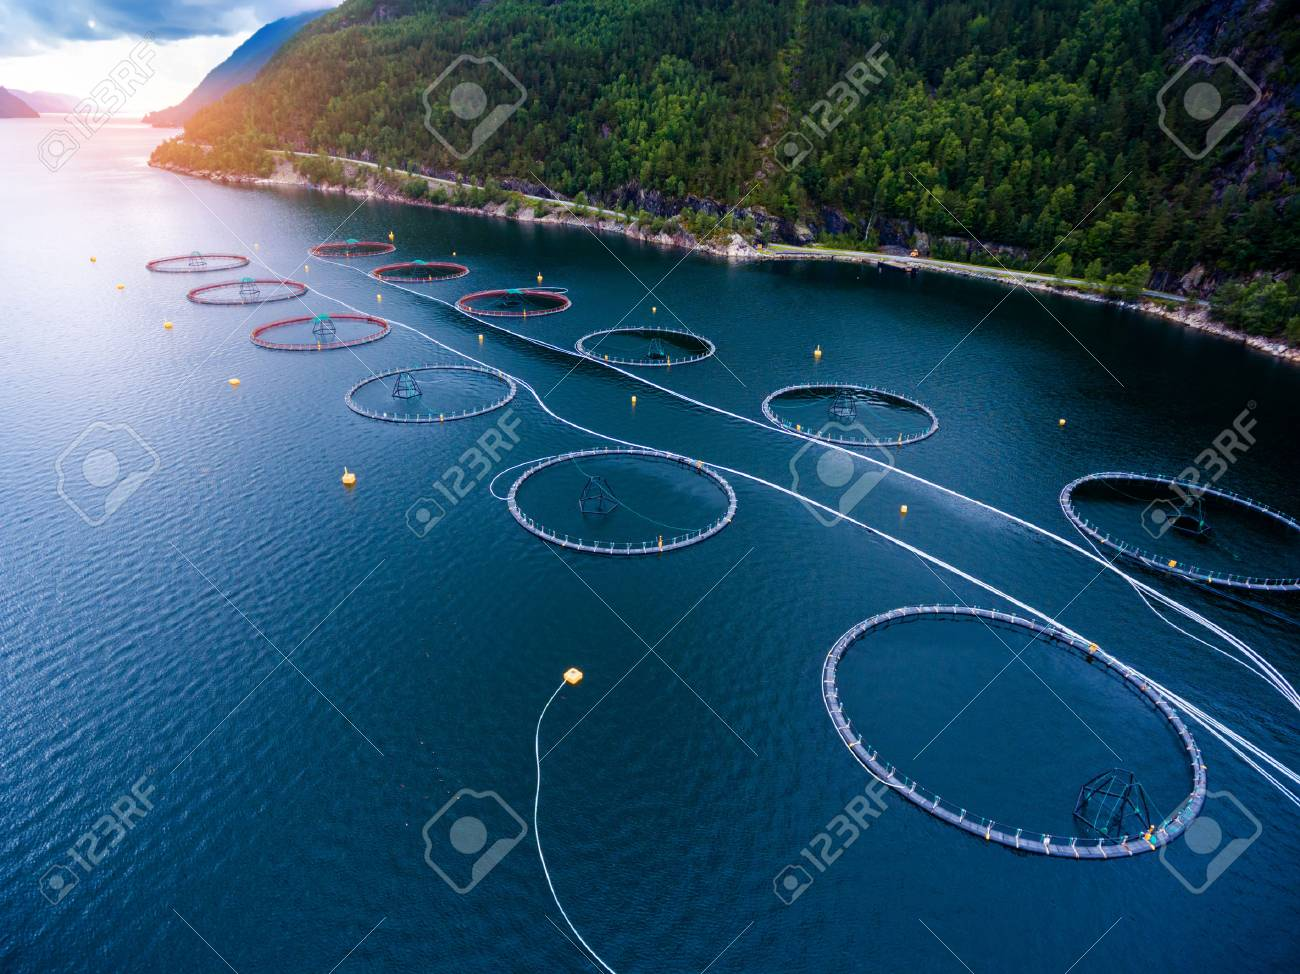 Farm salmon fishing in Norway aerial photography. - 70372418